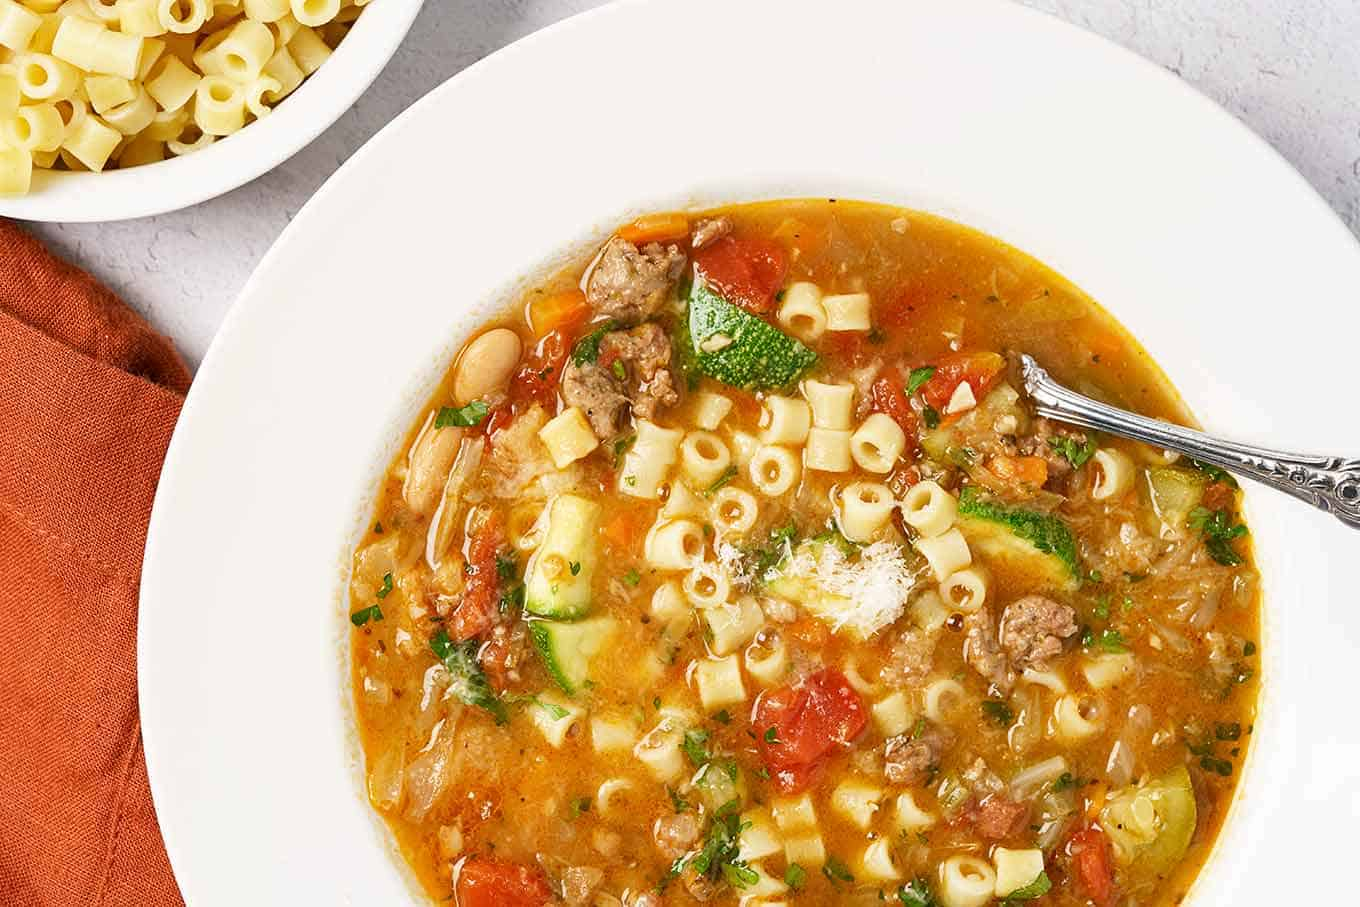 Bowl of minestrone soup with ditalini pasta added and grated Parmigiano-Reggiano cheese on top.